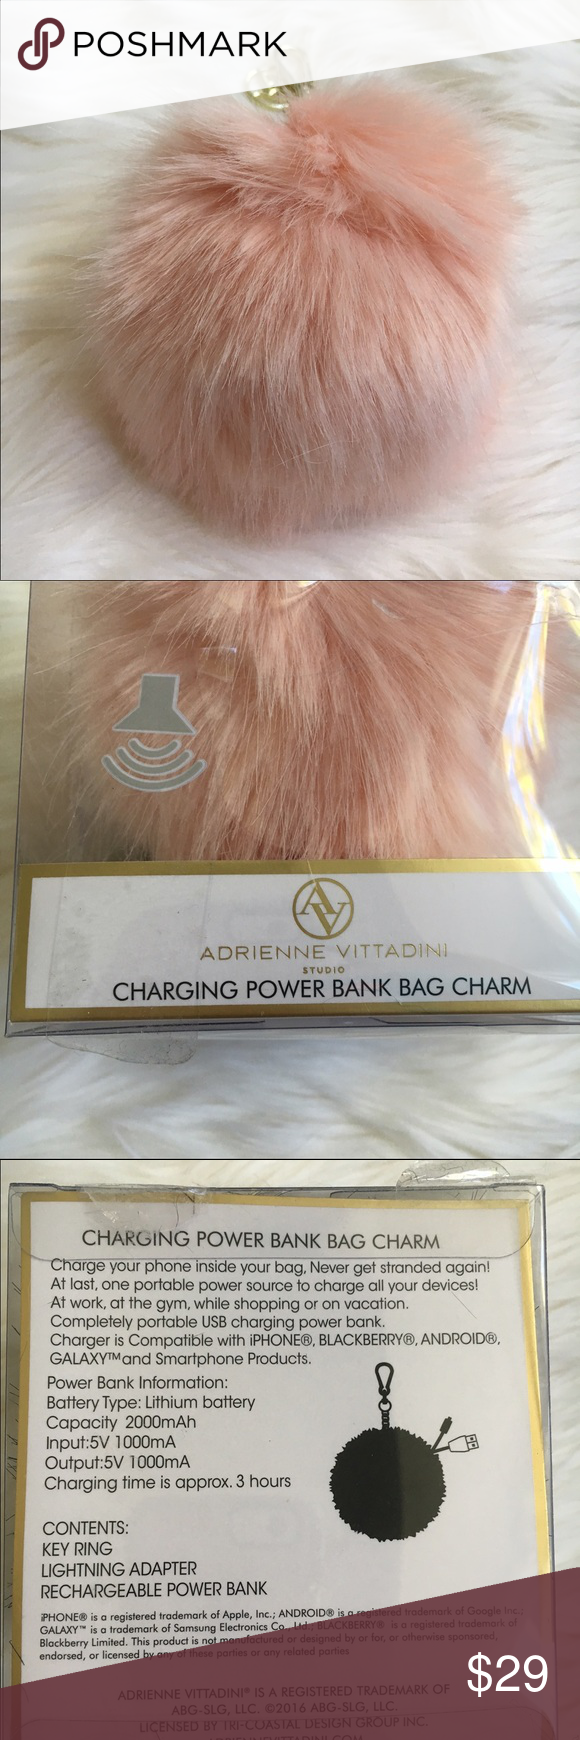 Adrienne Vittadini Purse Charm Phone Charger Pink fur phone charger purse charm by Adrienne Vittadini Adrienne Vittadini Accessories Key & Card Holders